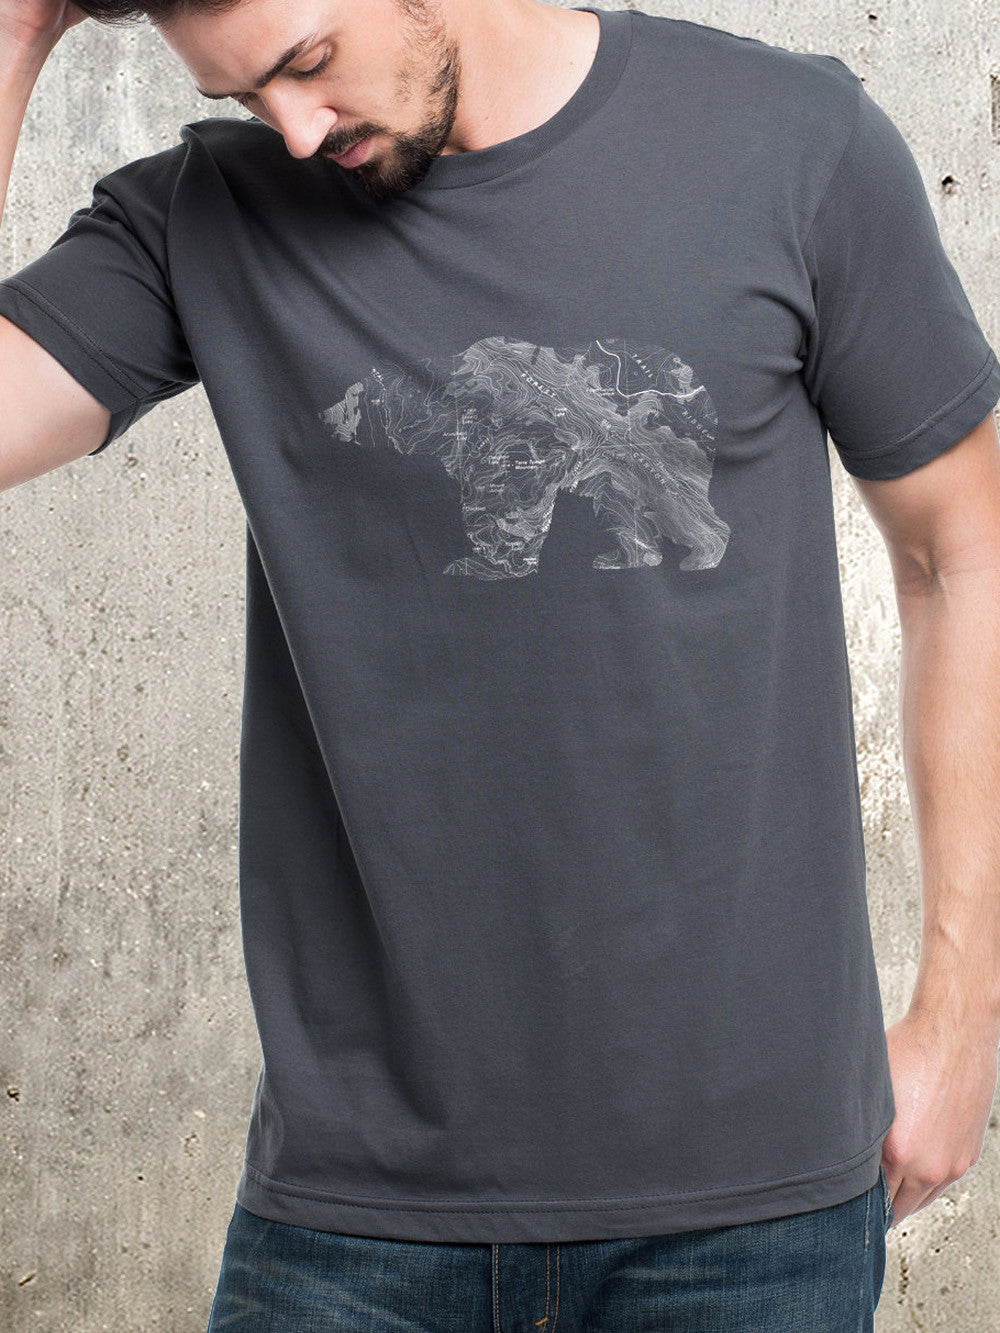 Topographic Bear T Shirt